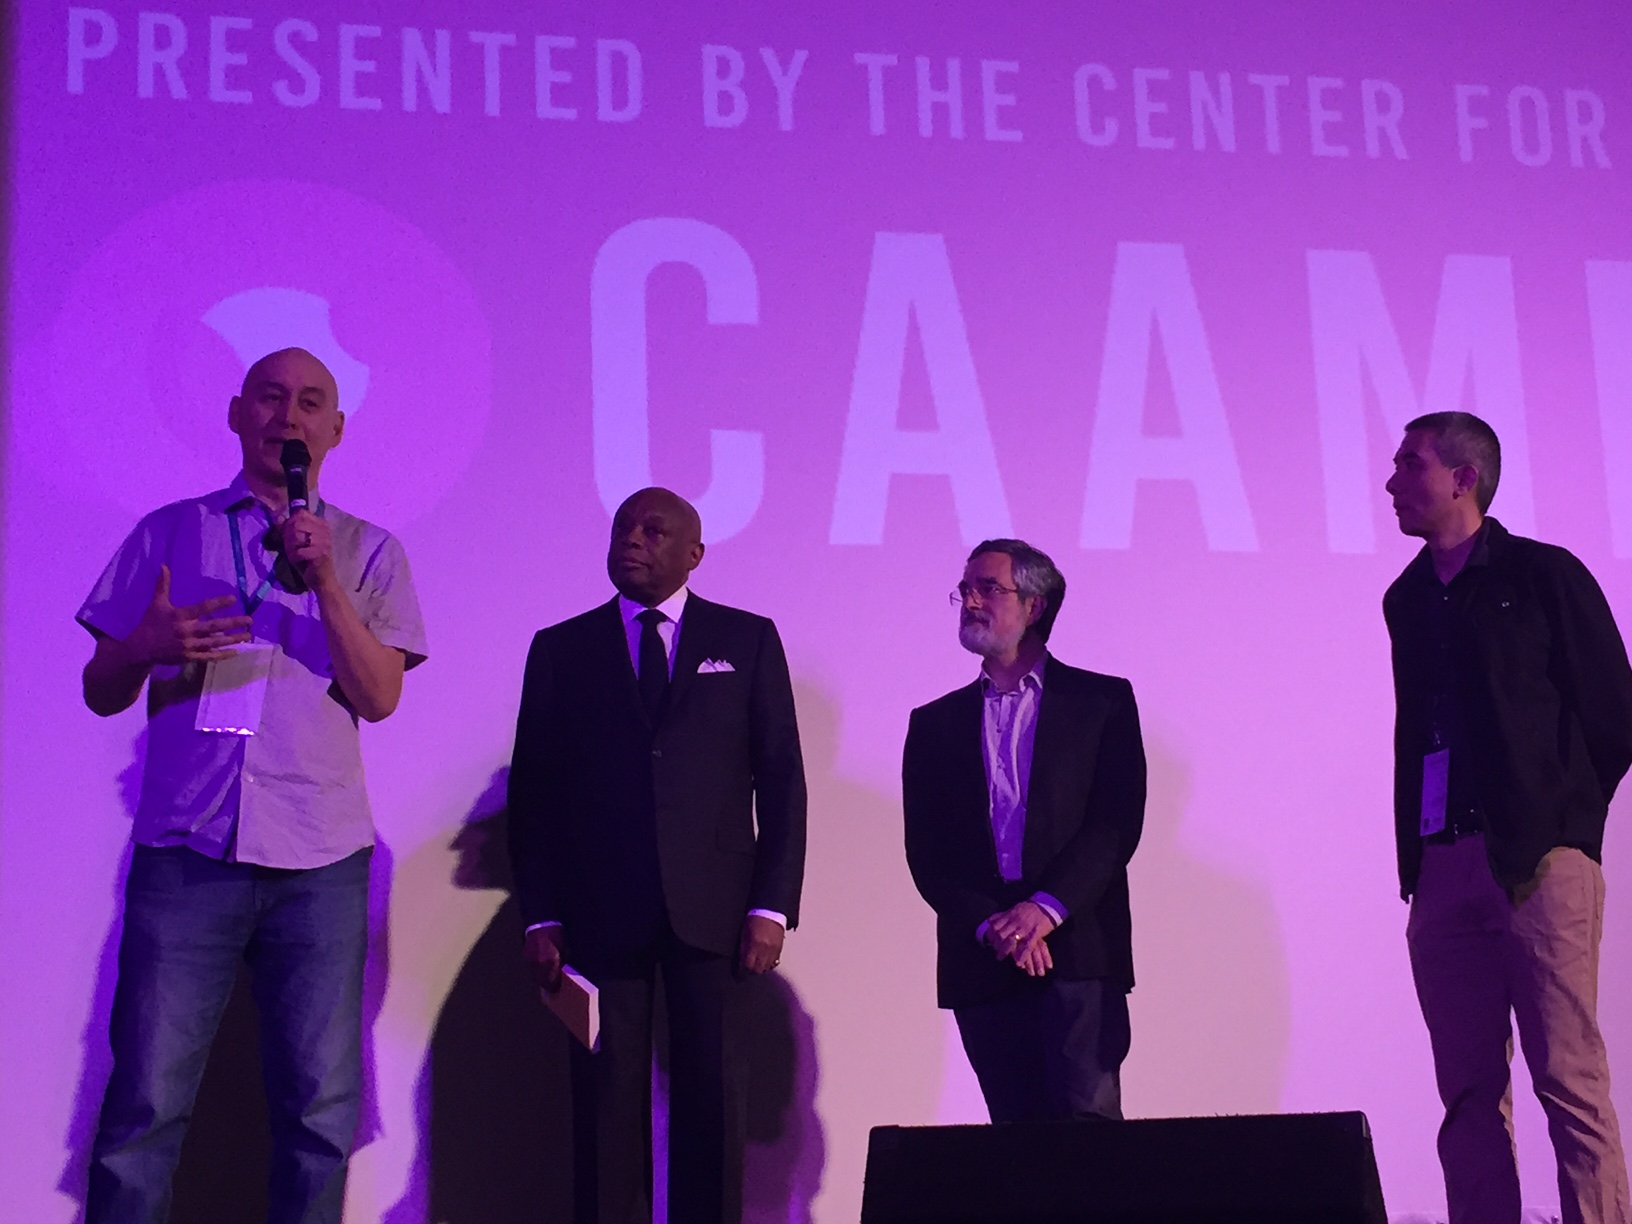 Onstage at CAAMFest 2017 after the screening of  The People's Hospital  with former SF Mayor Willie Brown, SF Supervisor Aaron Peskin and CAAM Producer Don Young